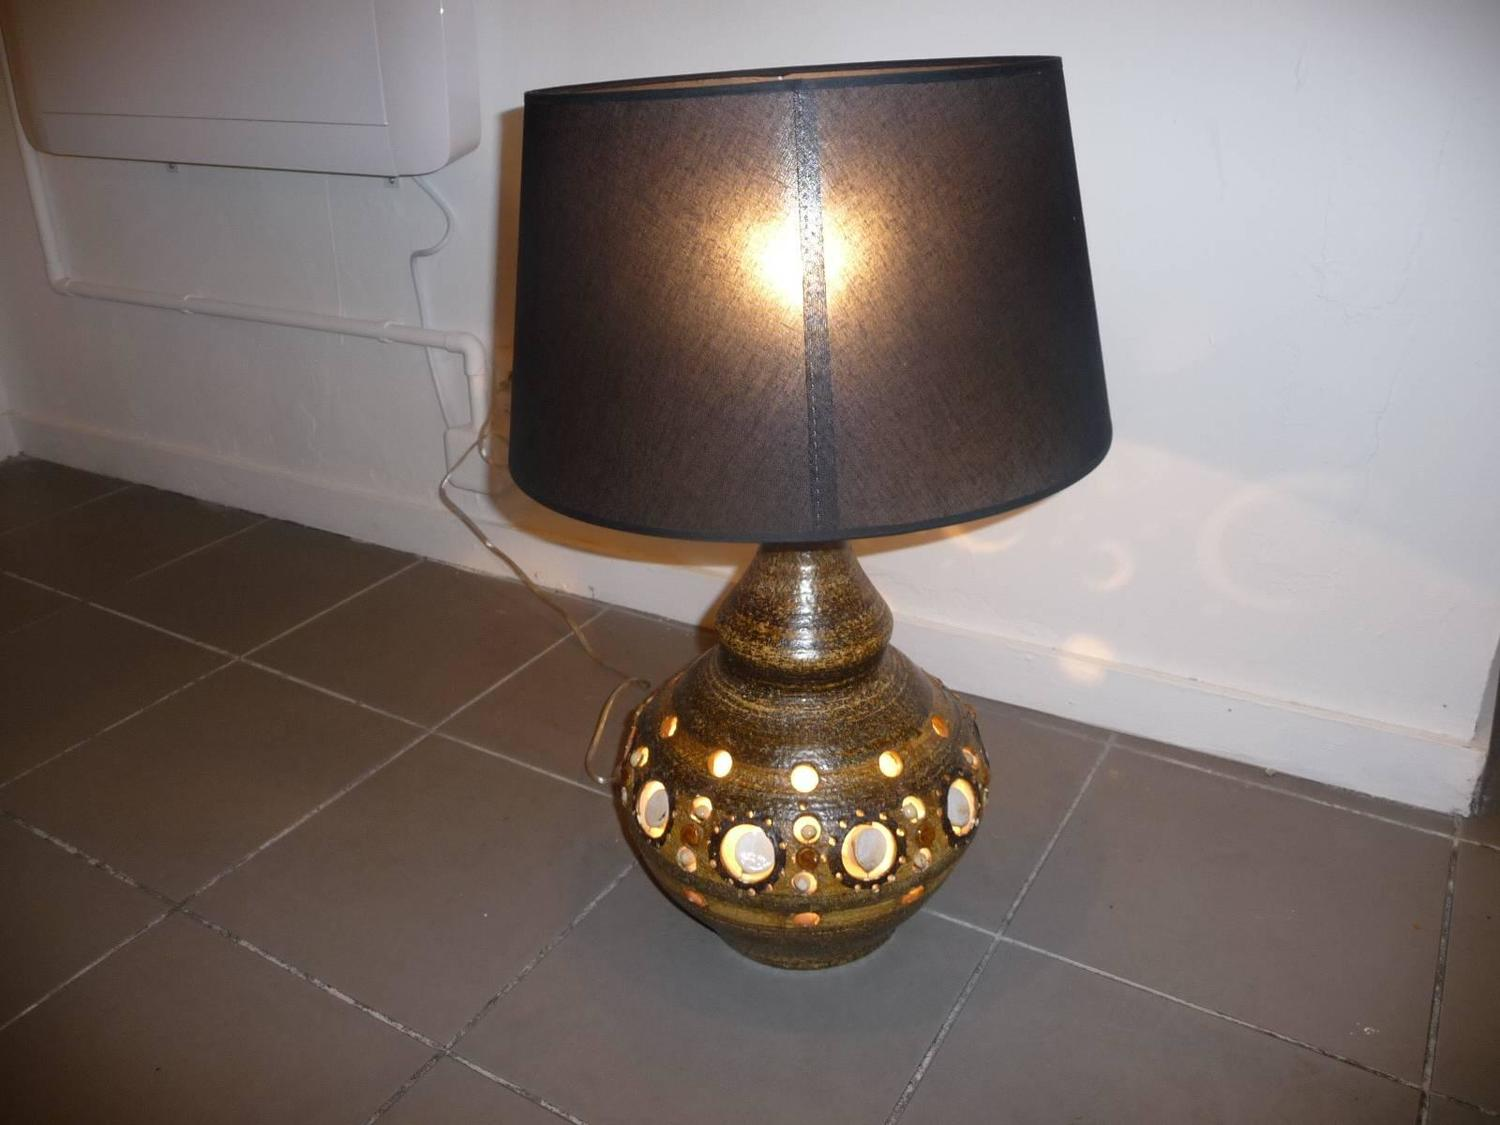 Large Lamps For Sale George Pelletier Large Table Lamp For Sale At 1stdibs